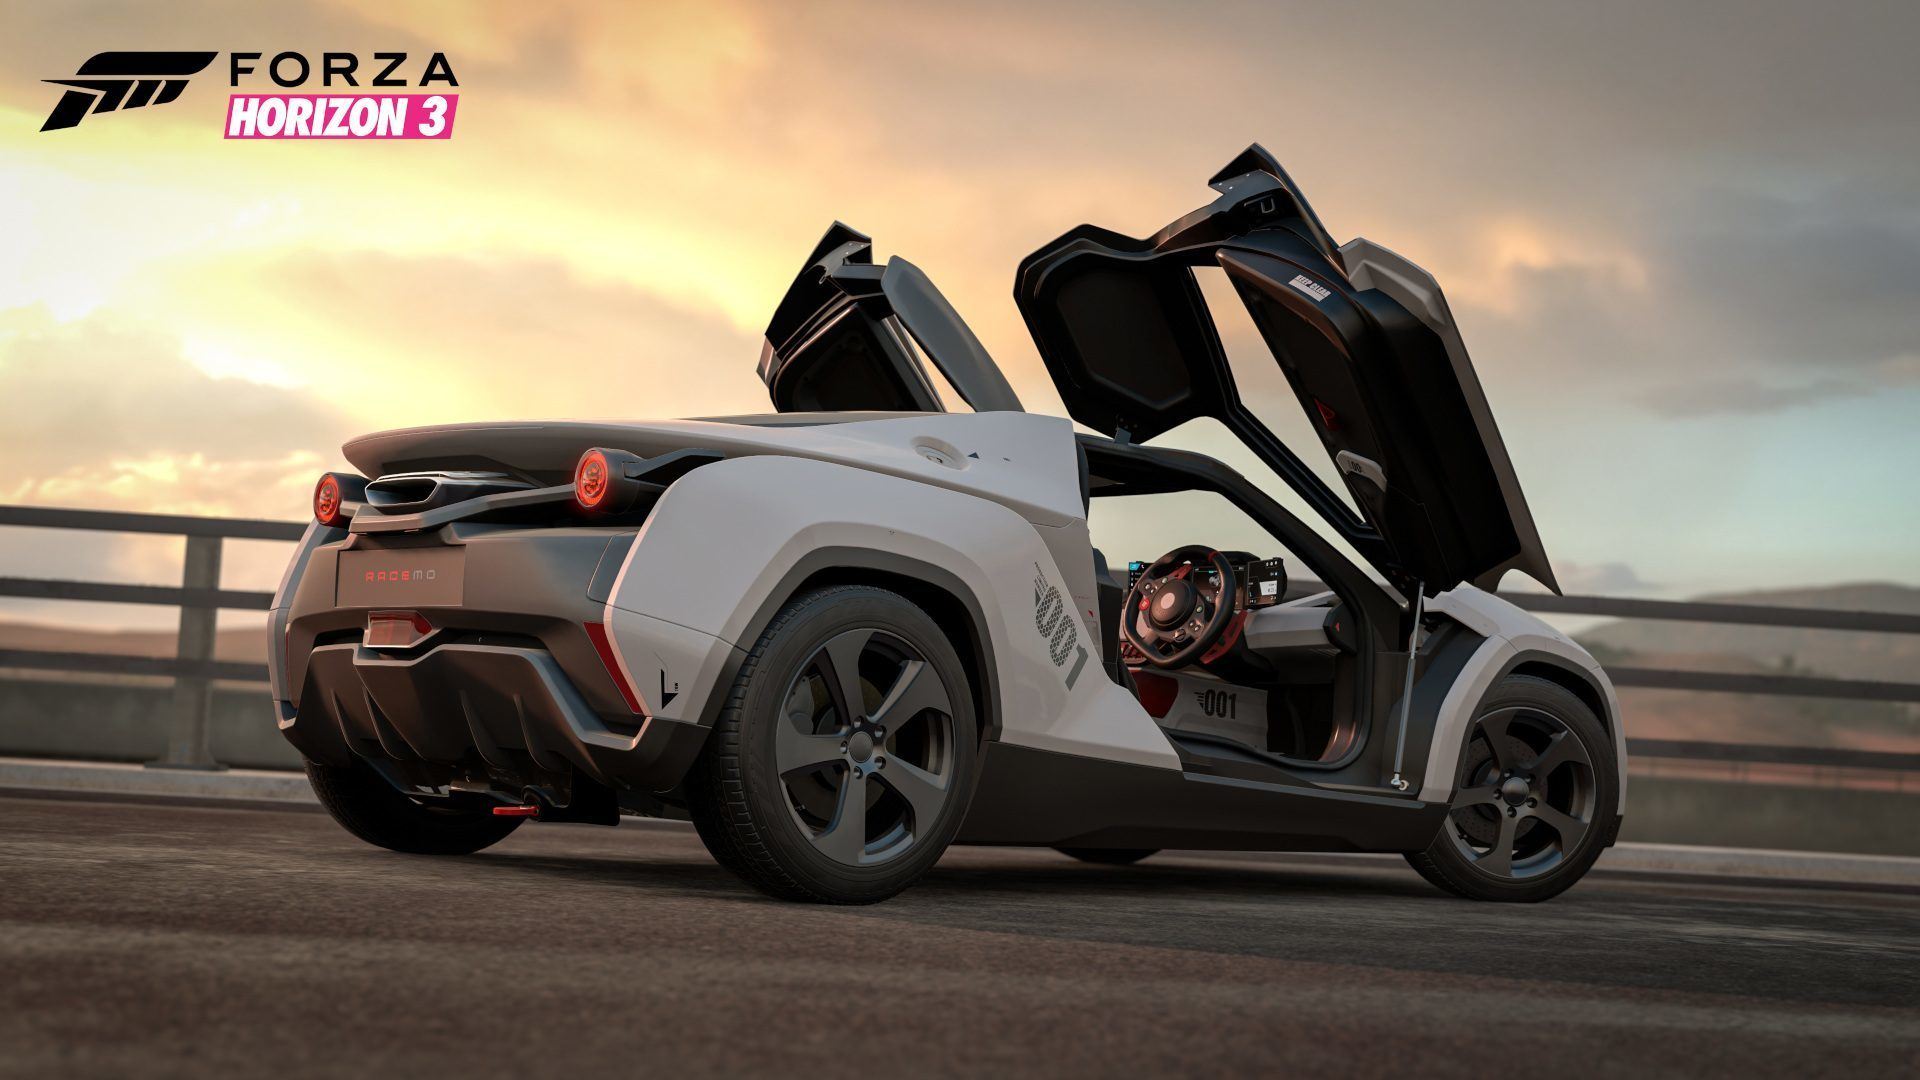 tamo racemo india 39 s newest sports car coming to forza. Black Bedroom Furniture Sets. Home Design Ideas